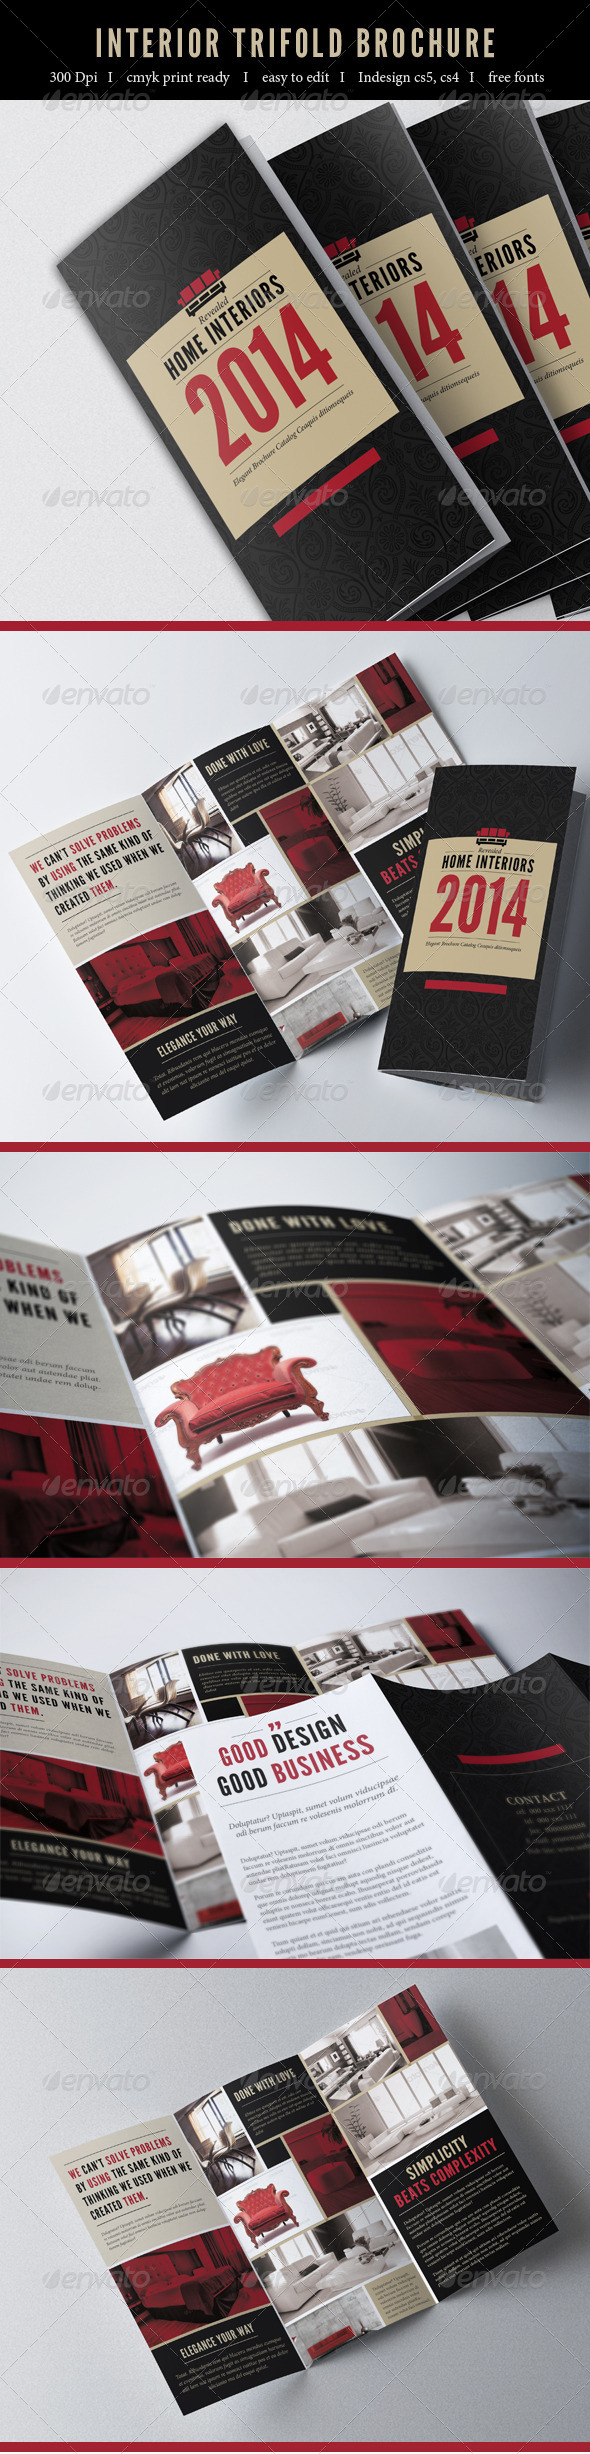 Interior Trifold Brochure - Catalogs Brochures